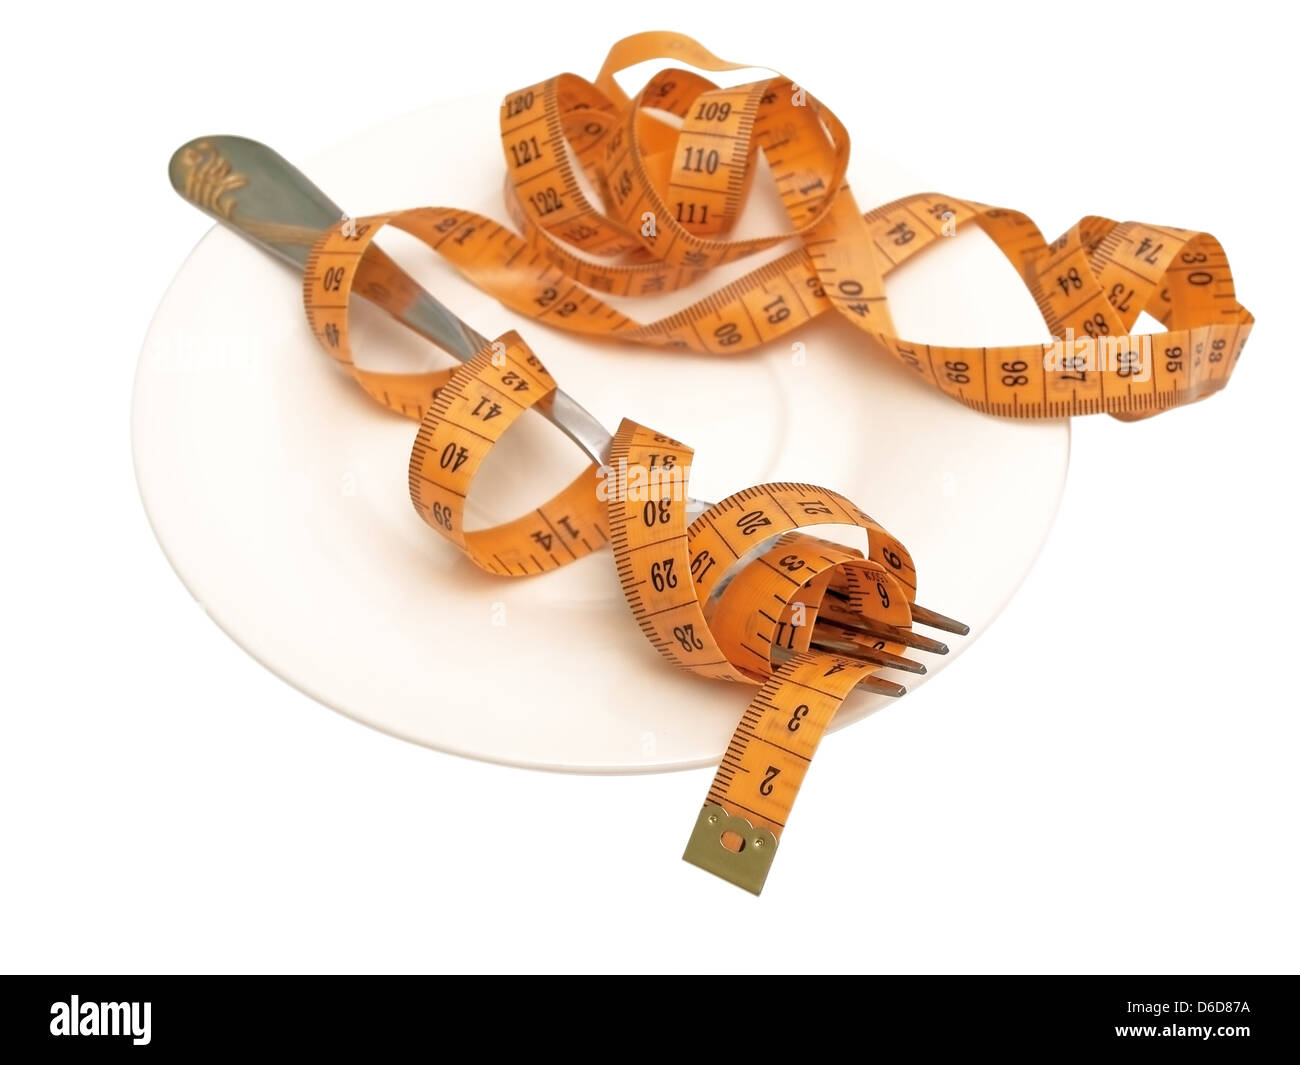 centimeter and fork - Stock Image